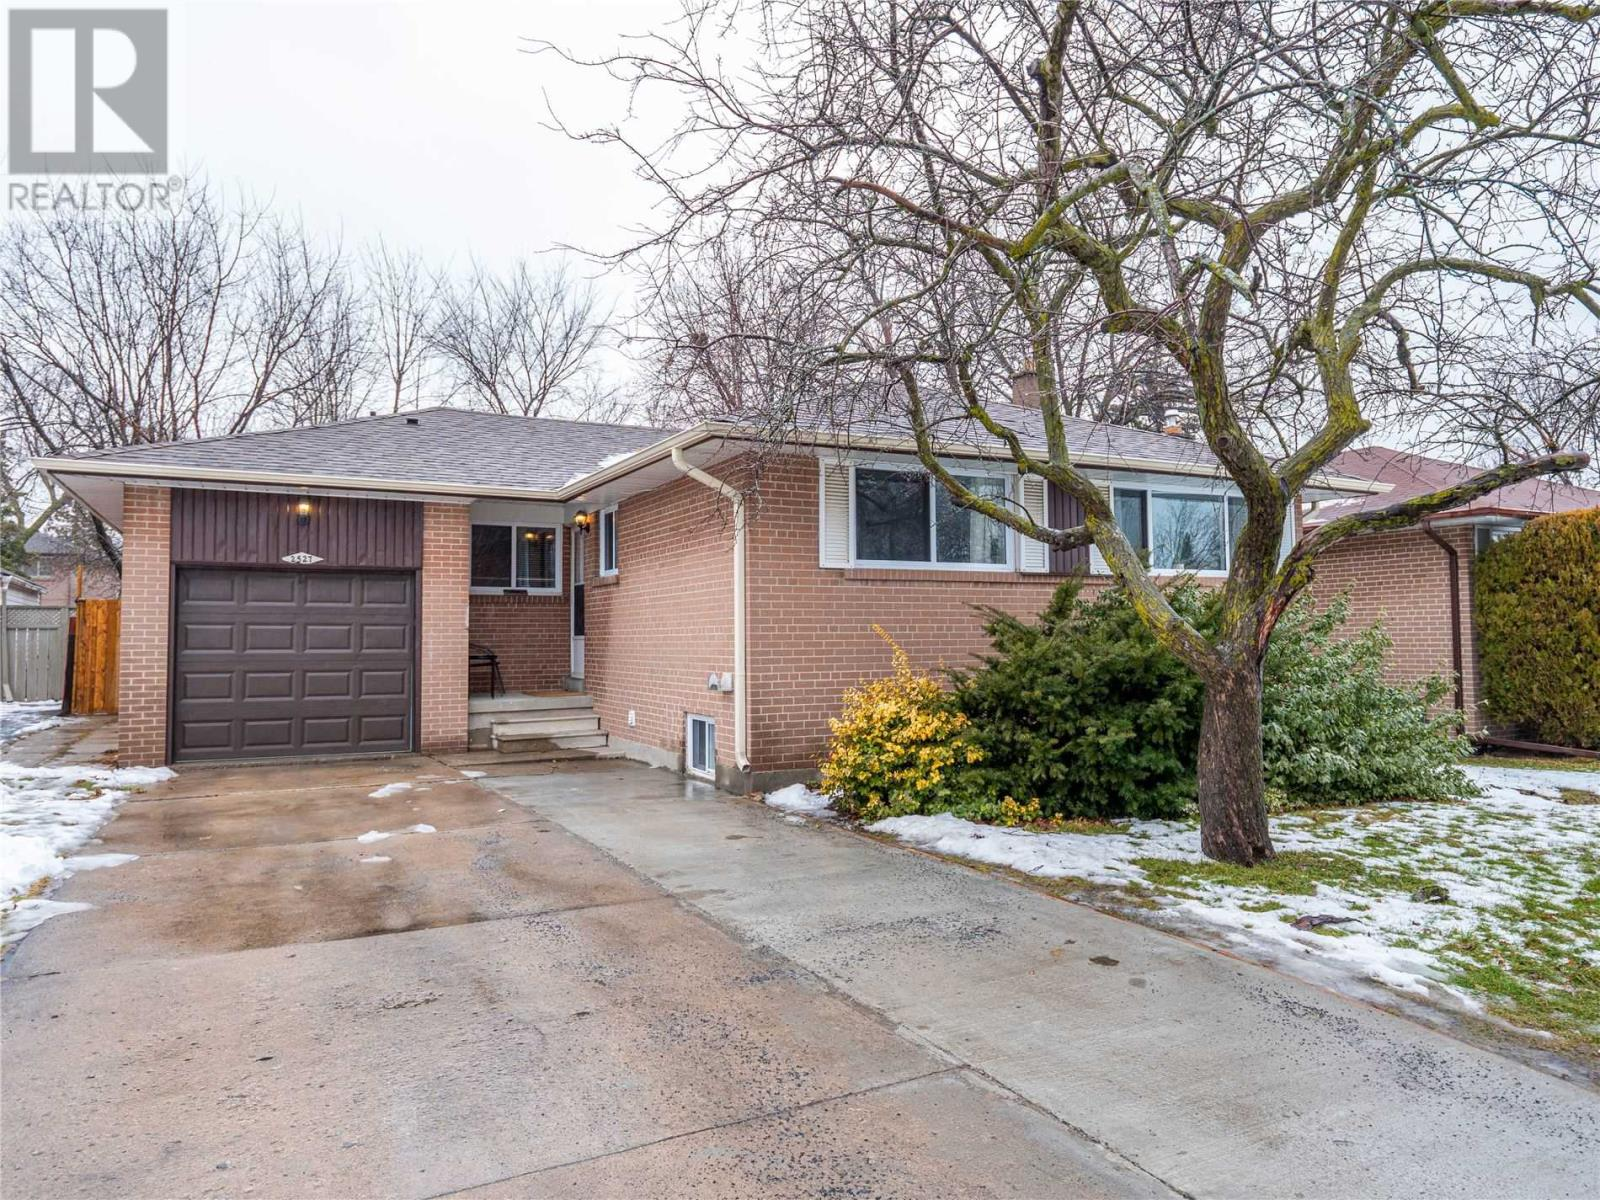 2527 Constable Rd, Mississauga, Ontario  L5J 1V9 - Photo 1 - W4676256